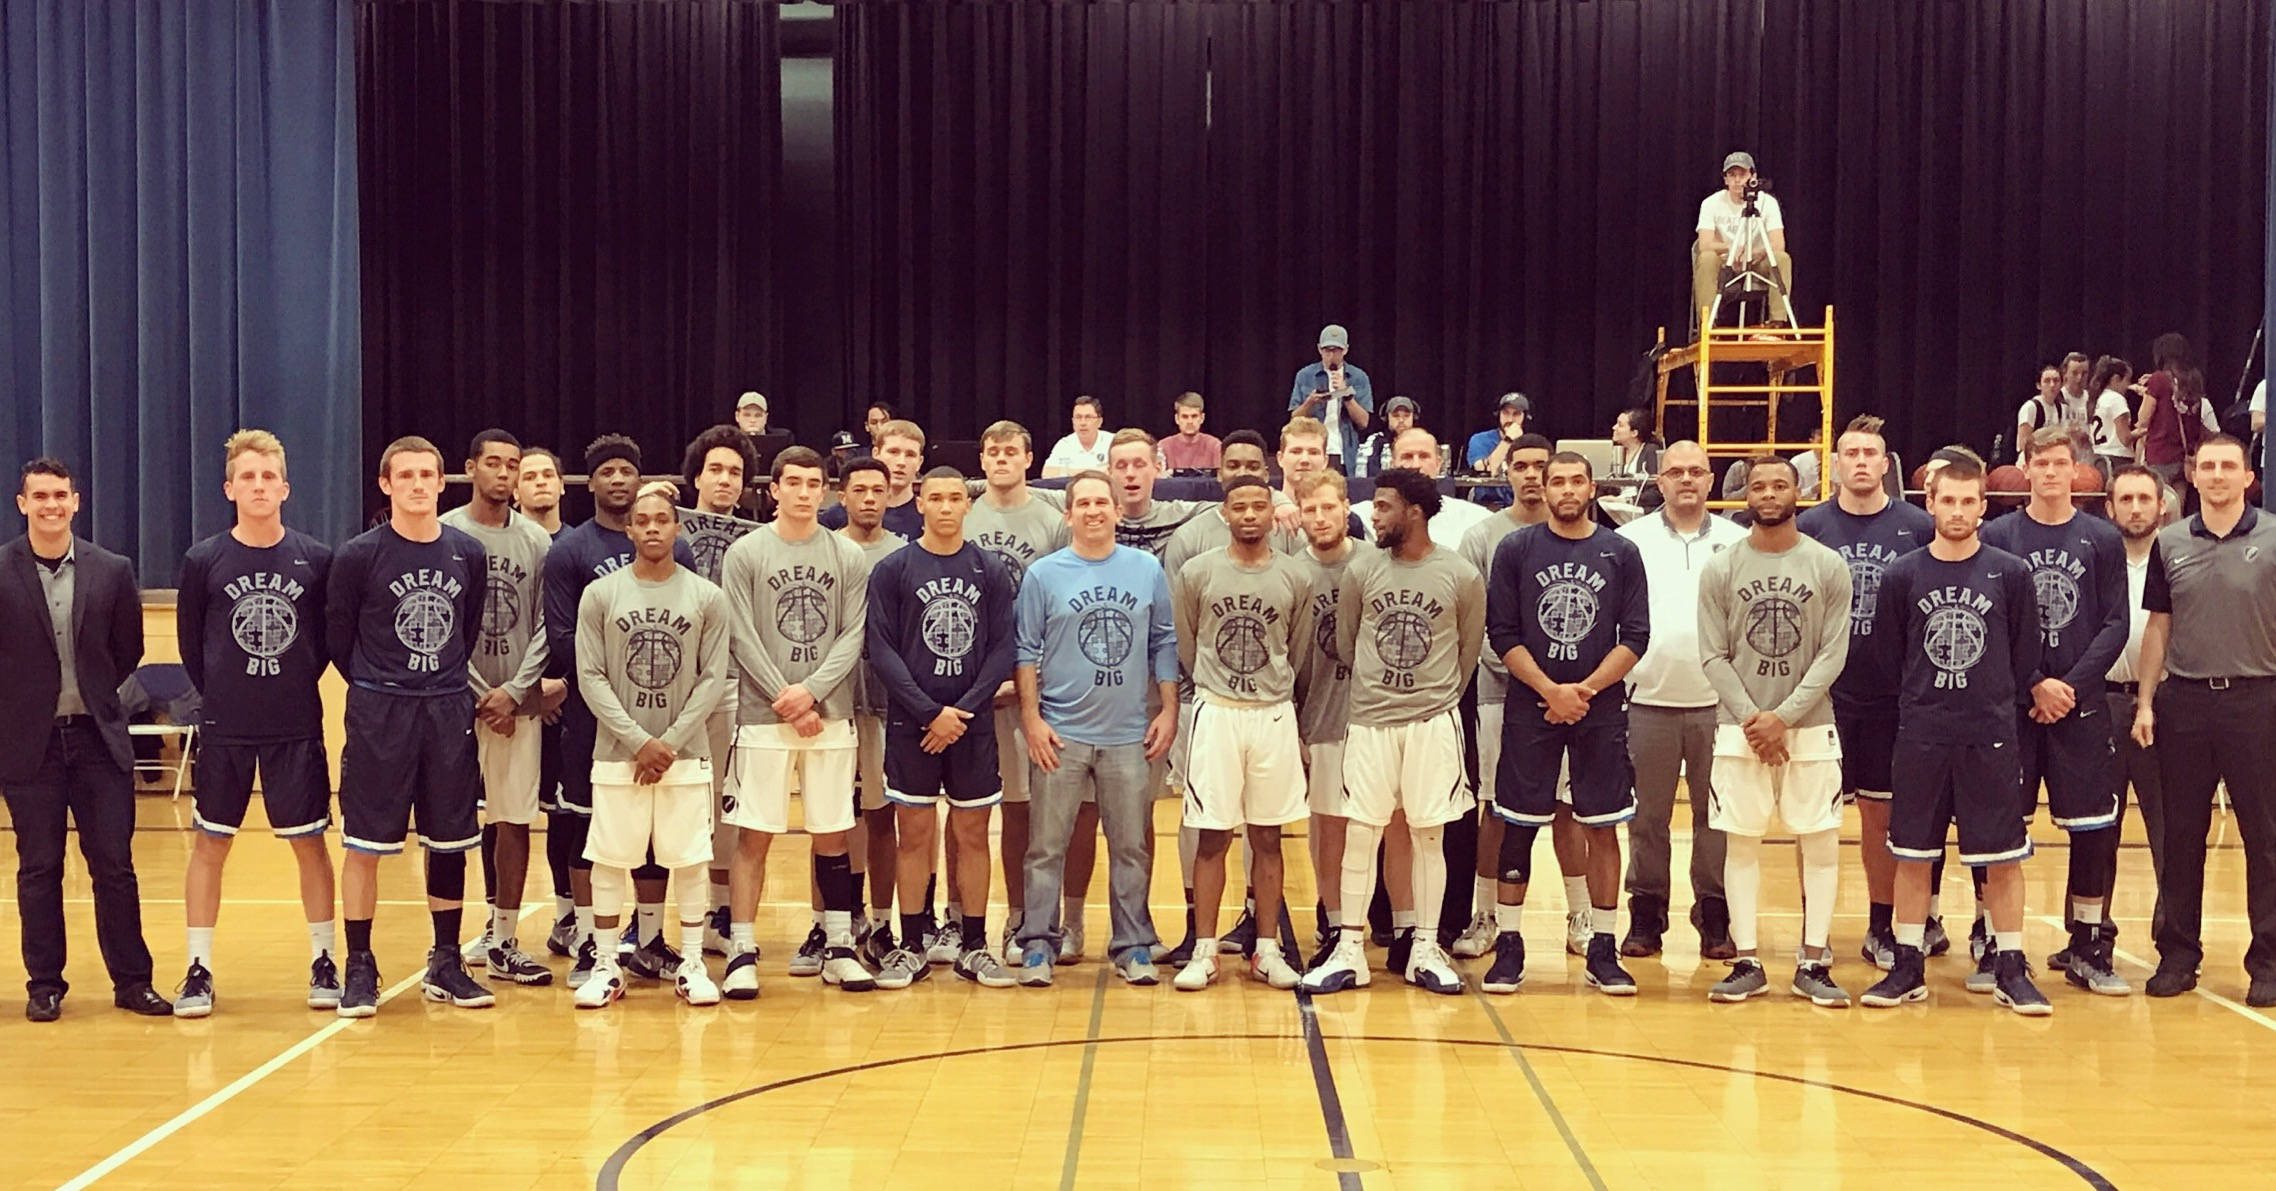 The Ozark Christian vs Manhattan Christian awareness outing game was great last year! Both team rocked our Dream Big shirts to help raise awareness. Grateful for the support of both schools!